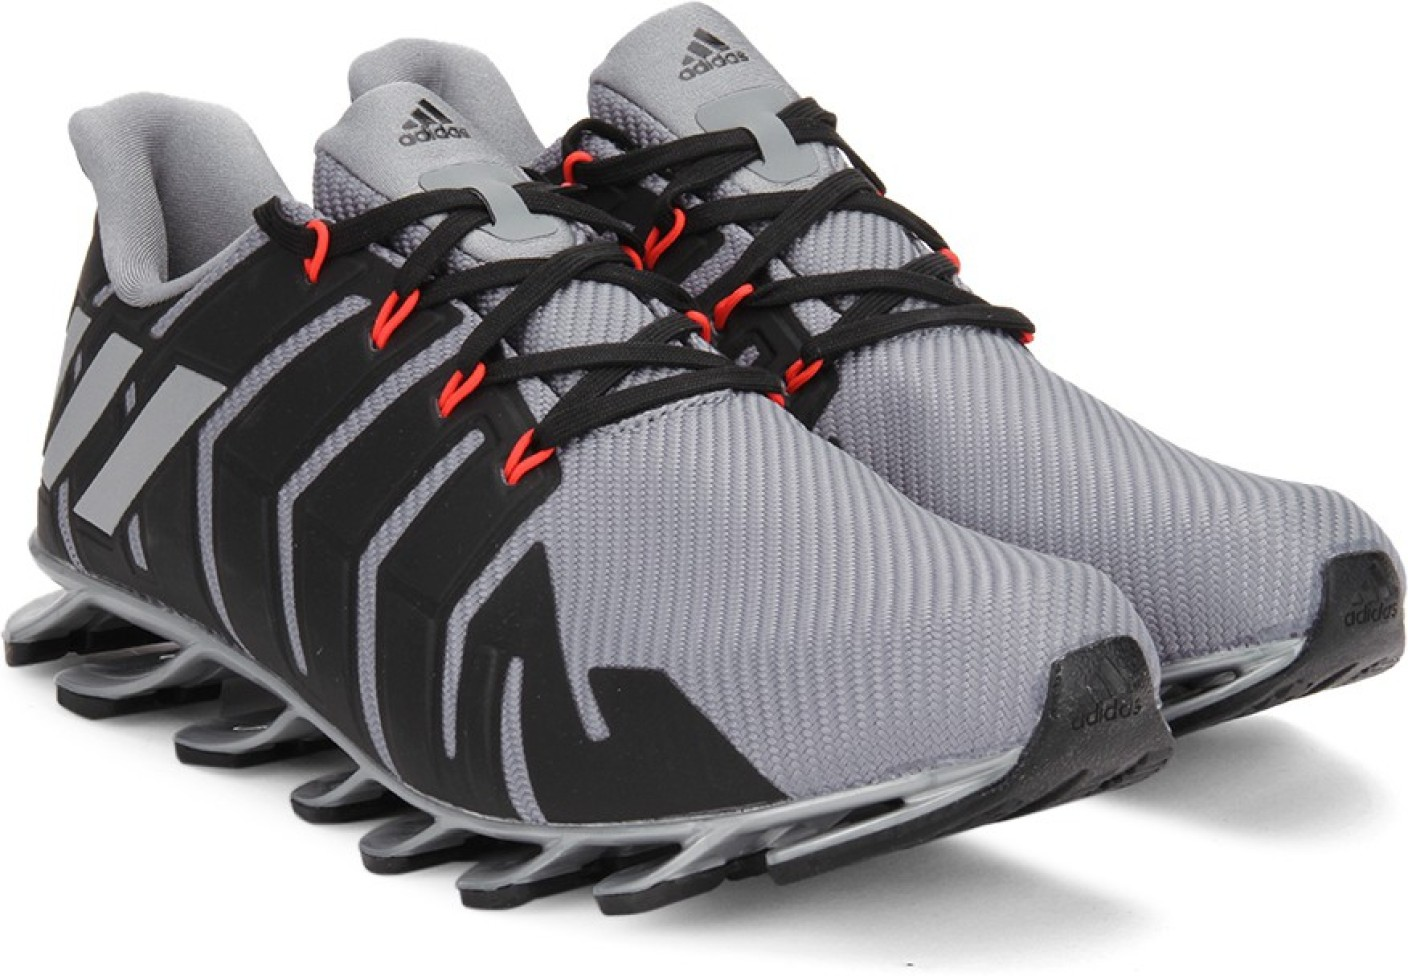 adidas springblade pro m running shoes